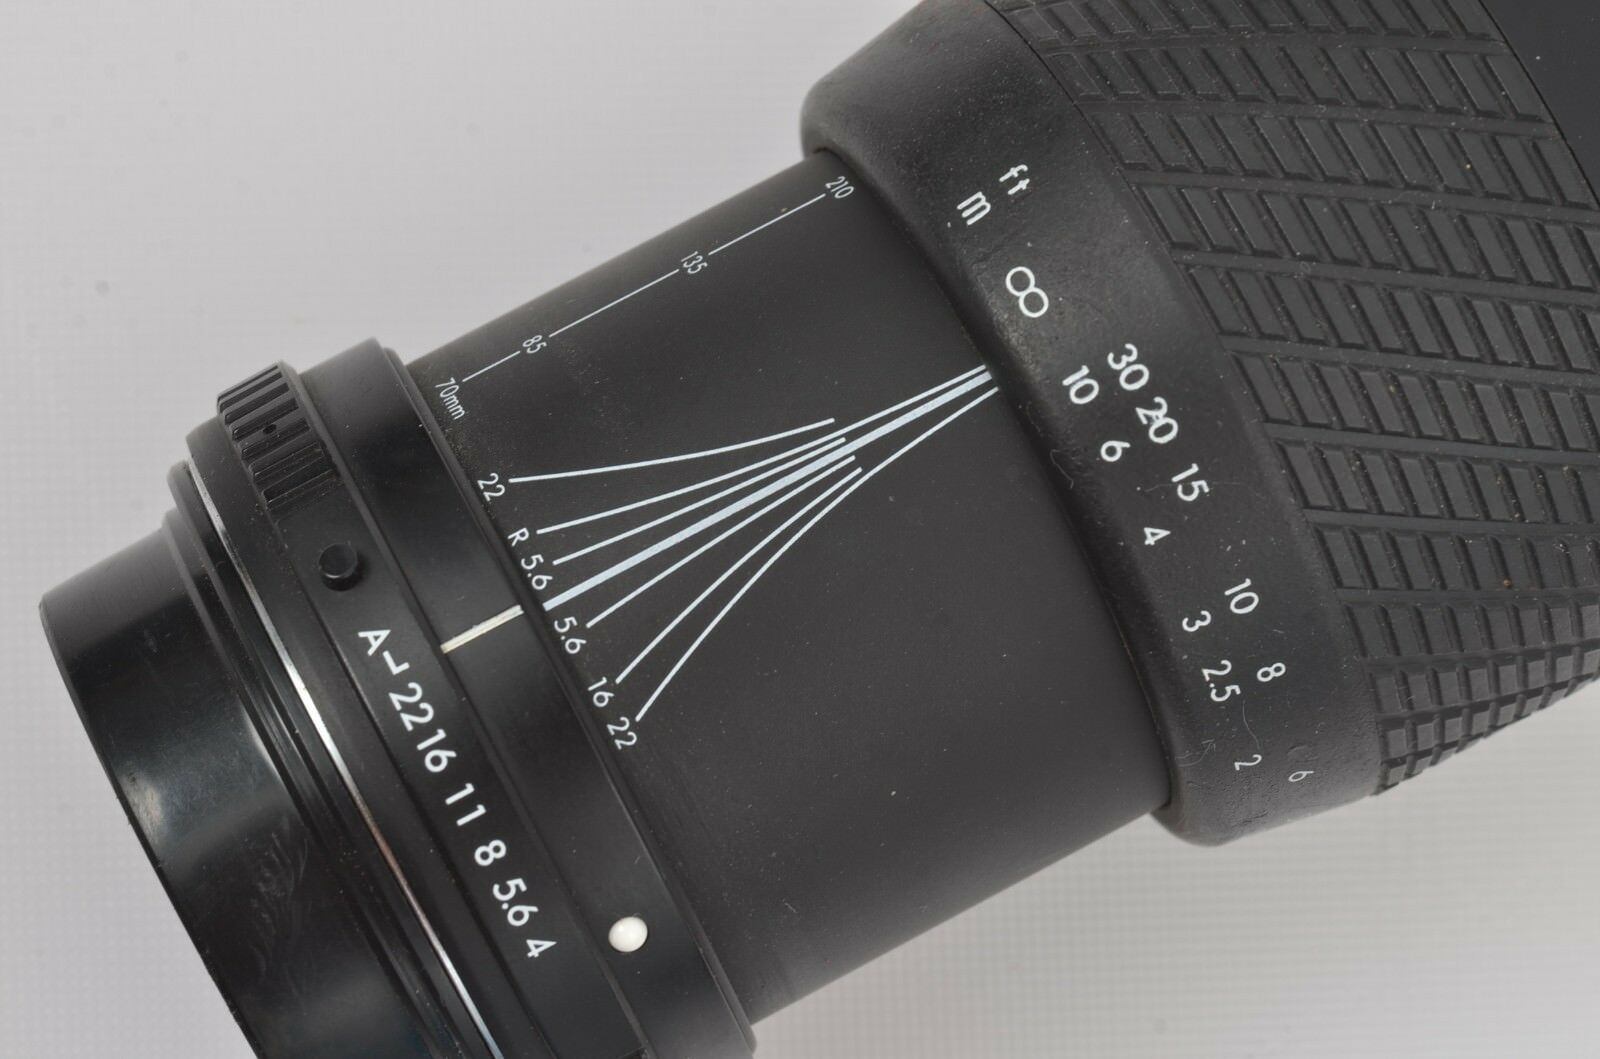 EXC SIGMA MF UC ZOOM 70-210mm F4-5.6 FOR PENTAX PK MOUNT, CAPS, INSTRUCTIONS - $23.95